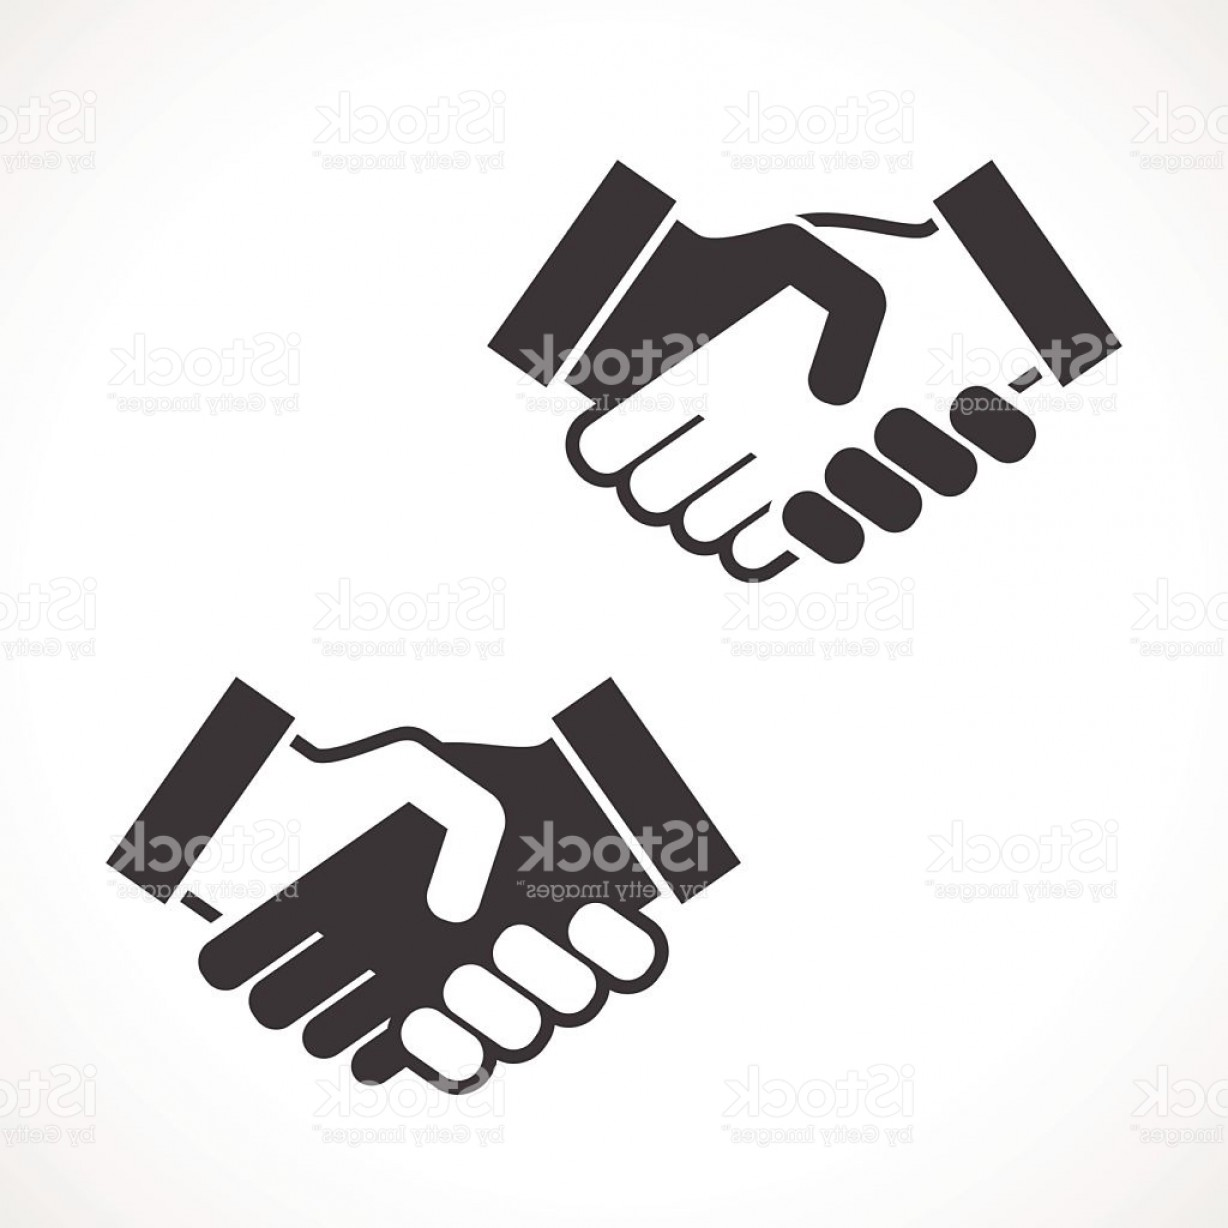 Handshake Vector Art: Black Handshake Vector Icon Gm